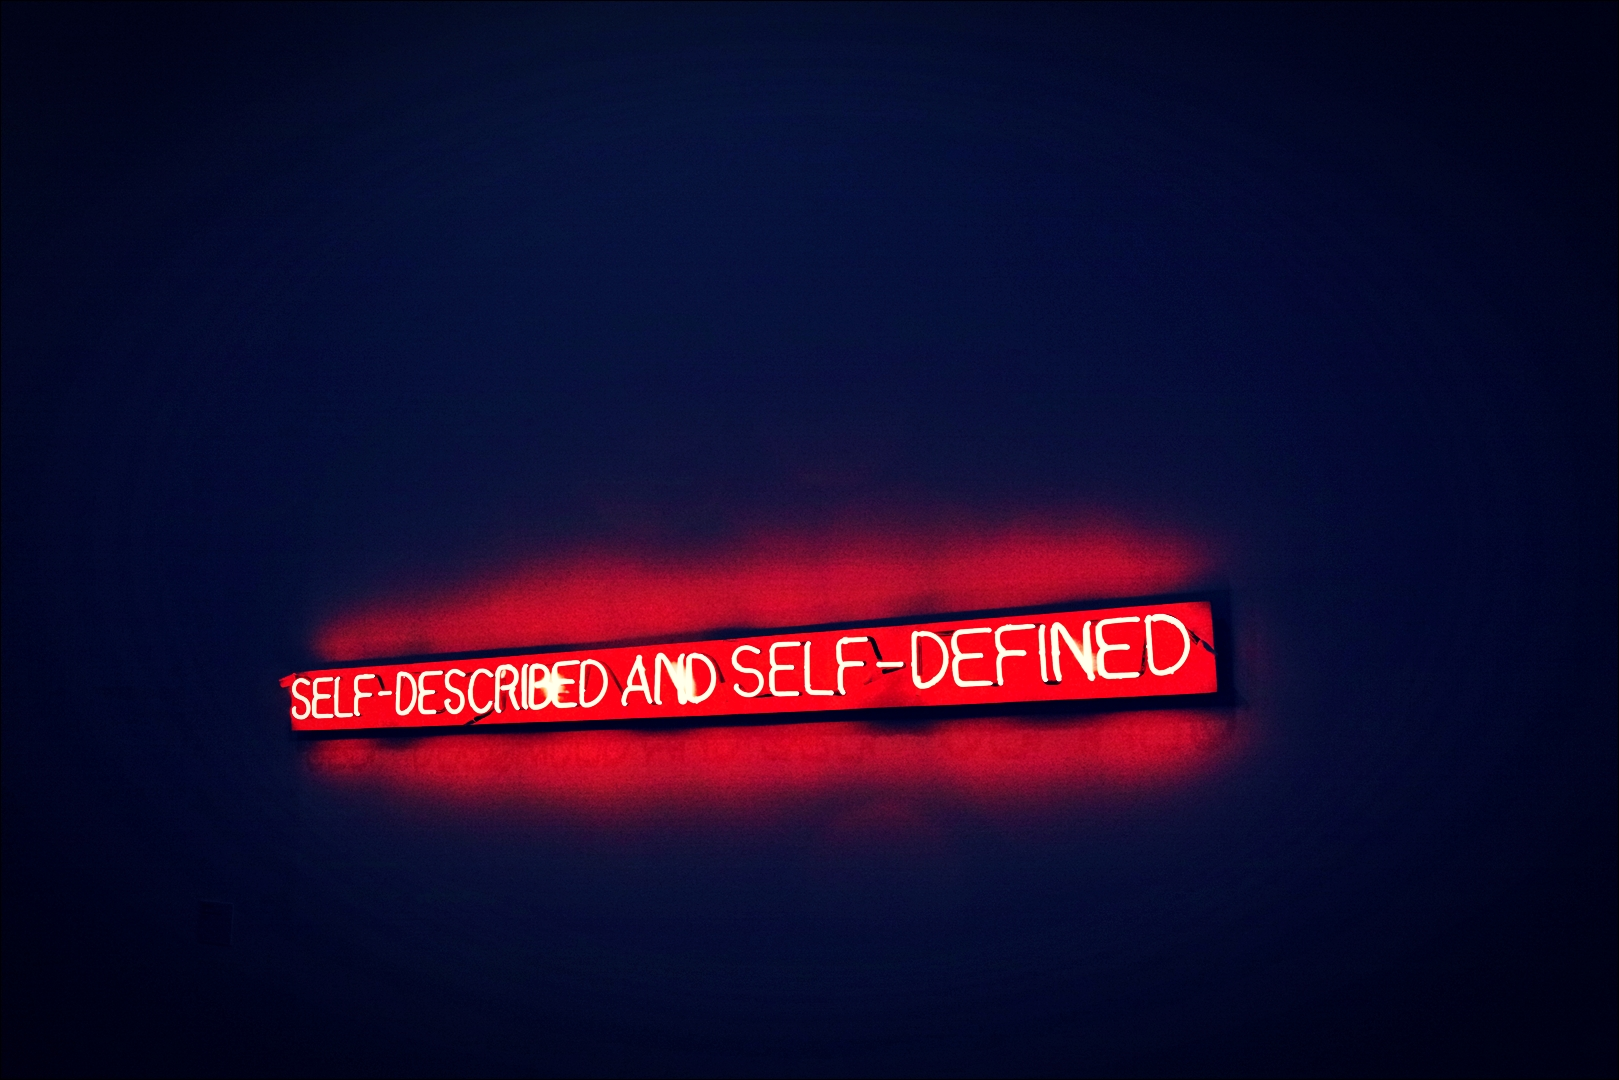 조셉코수스(Joseph Kosuth), SELF-DESCRIBED AND SELF-DEFINED-'베라르도 현대미술관 Berardo Museum of Modern and Contemporary Art'